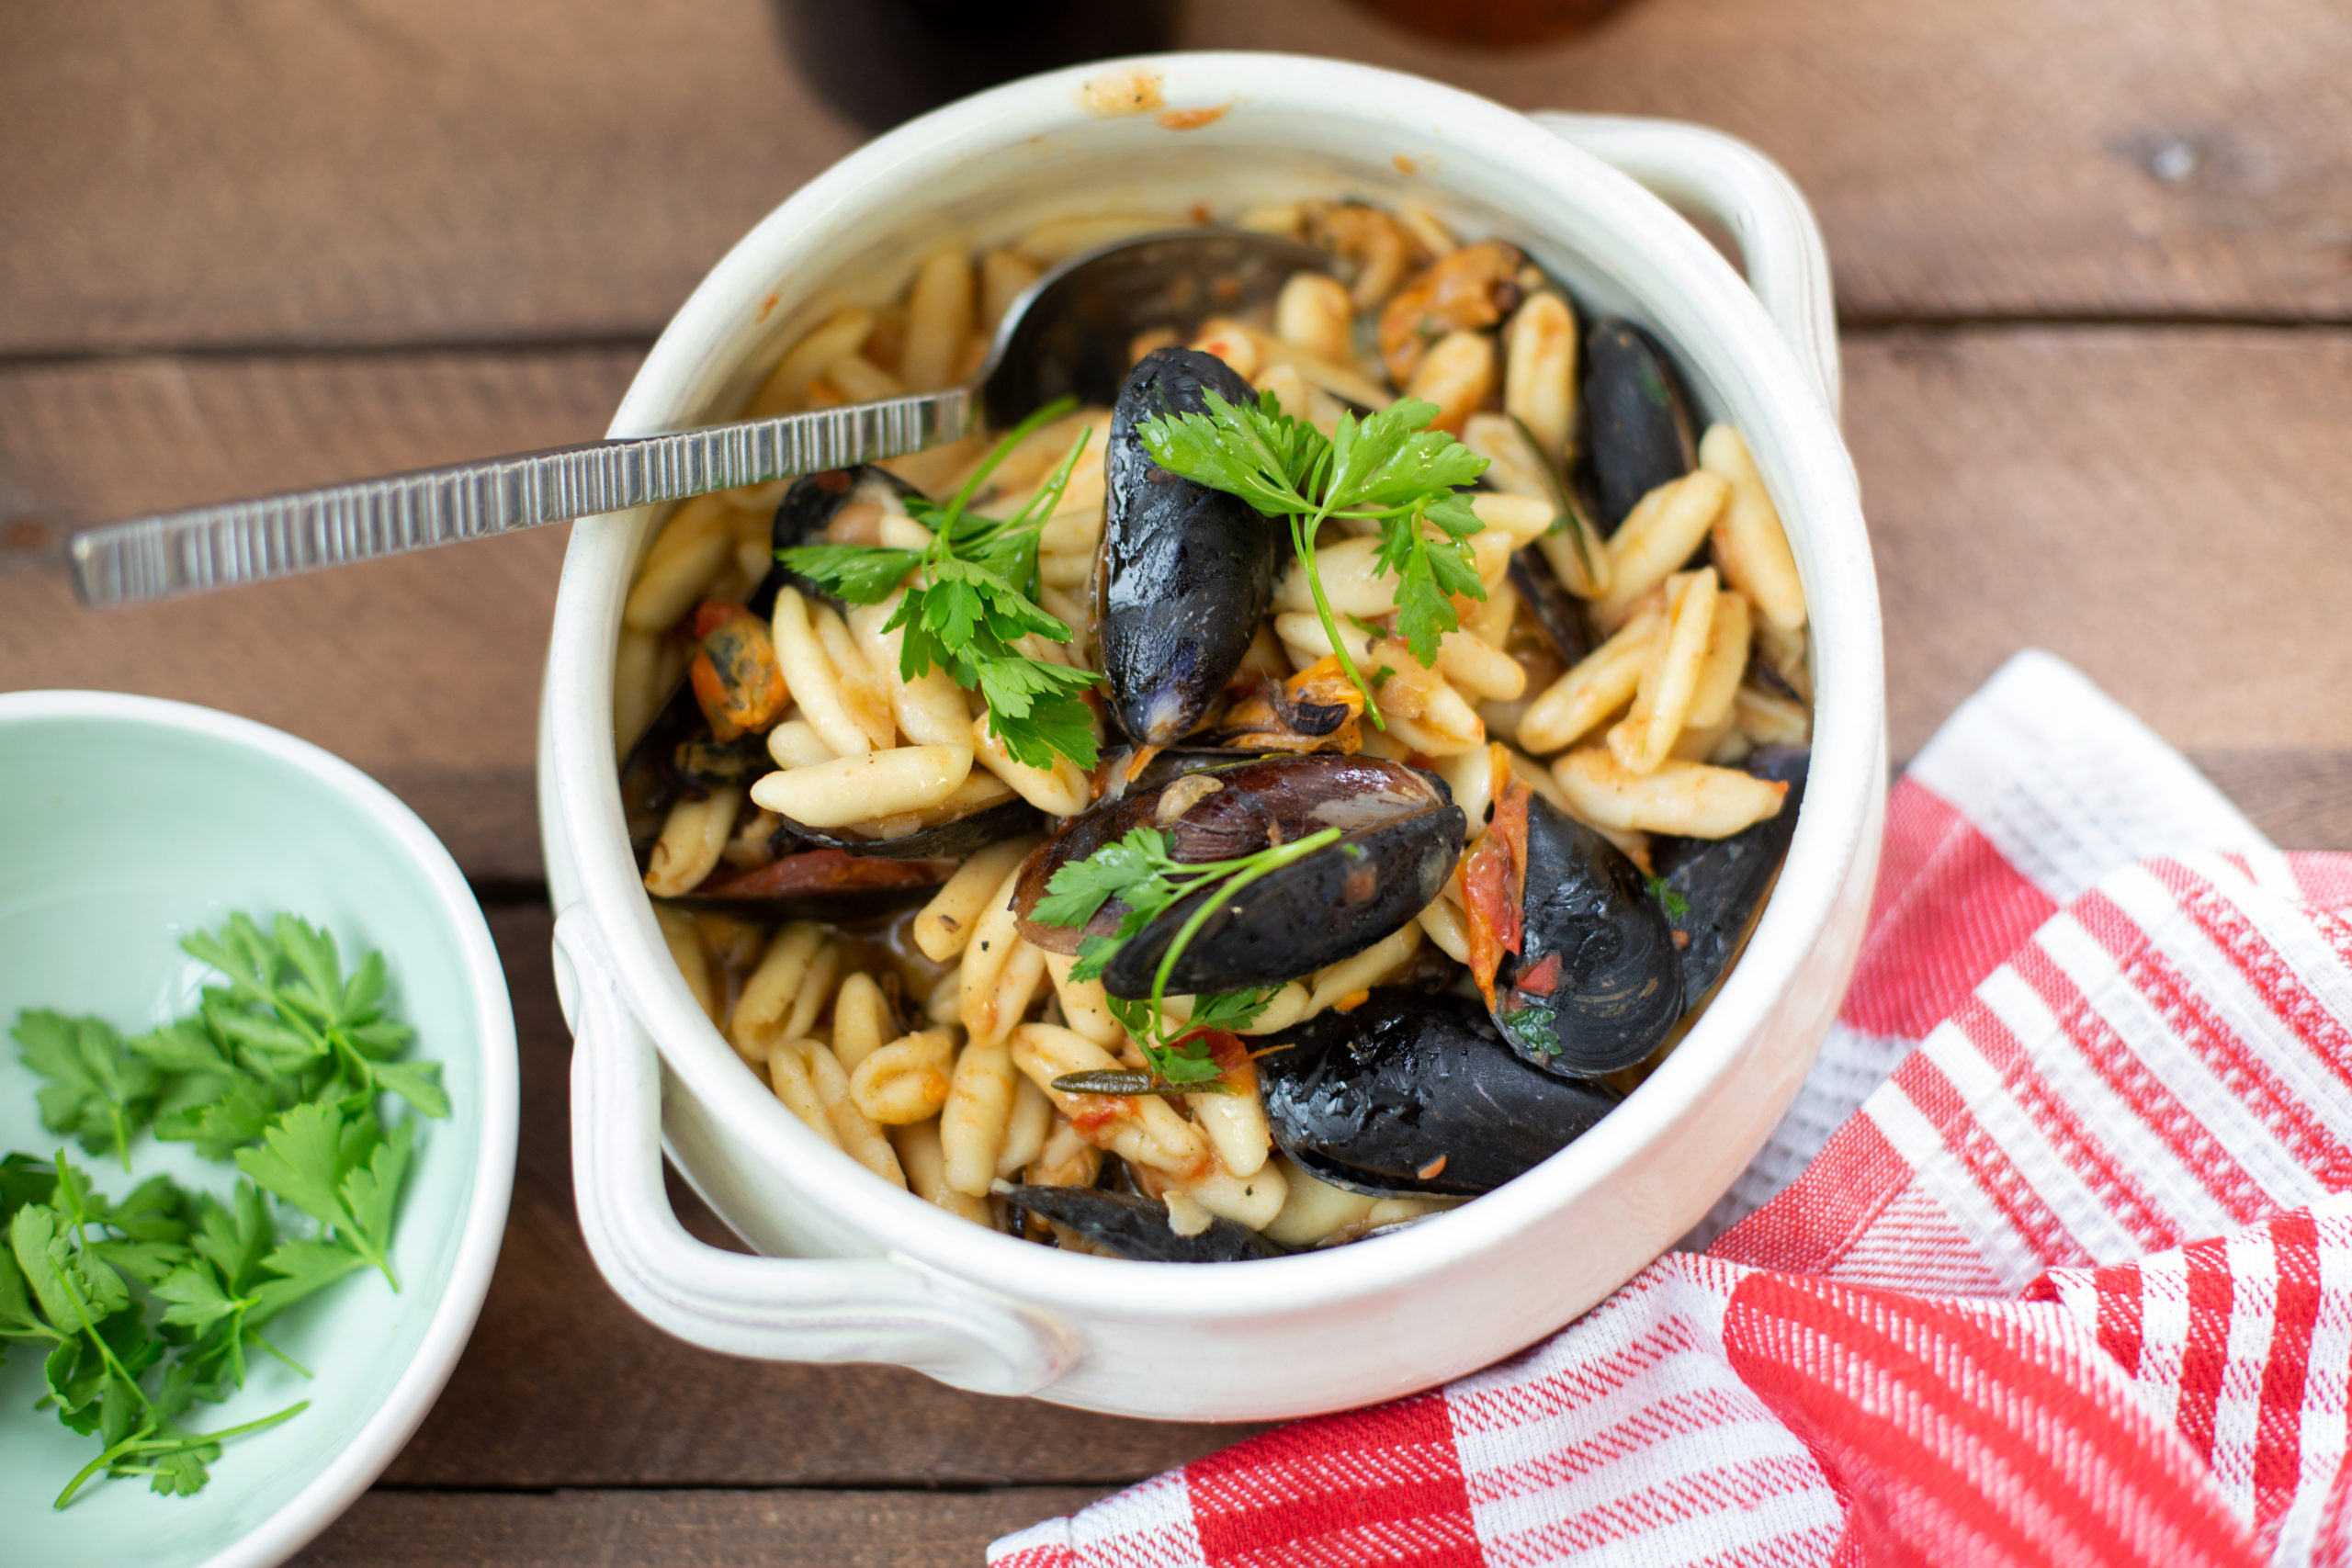 CAVATELI WITH MUSSELS 2.